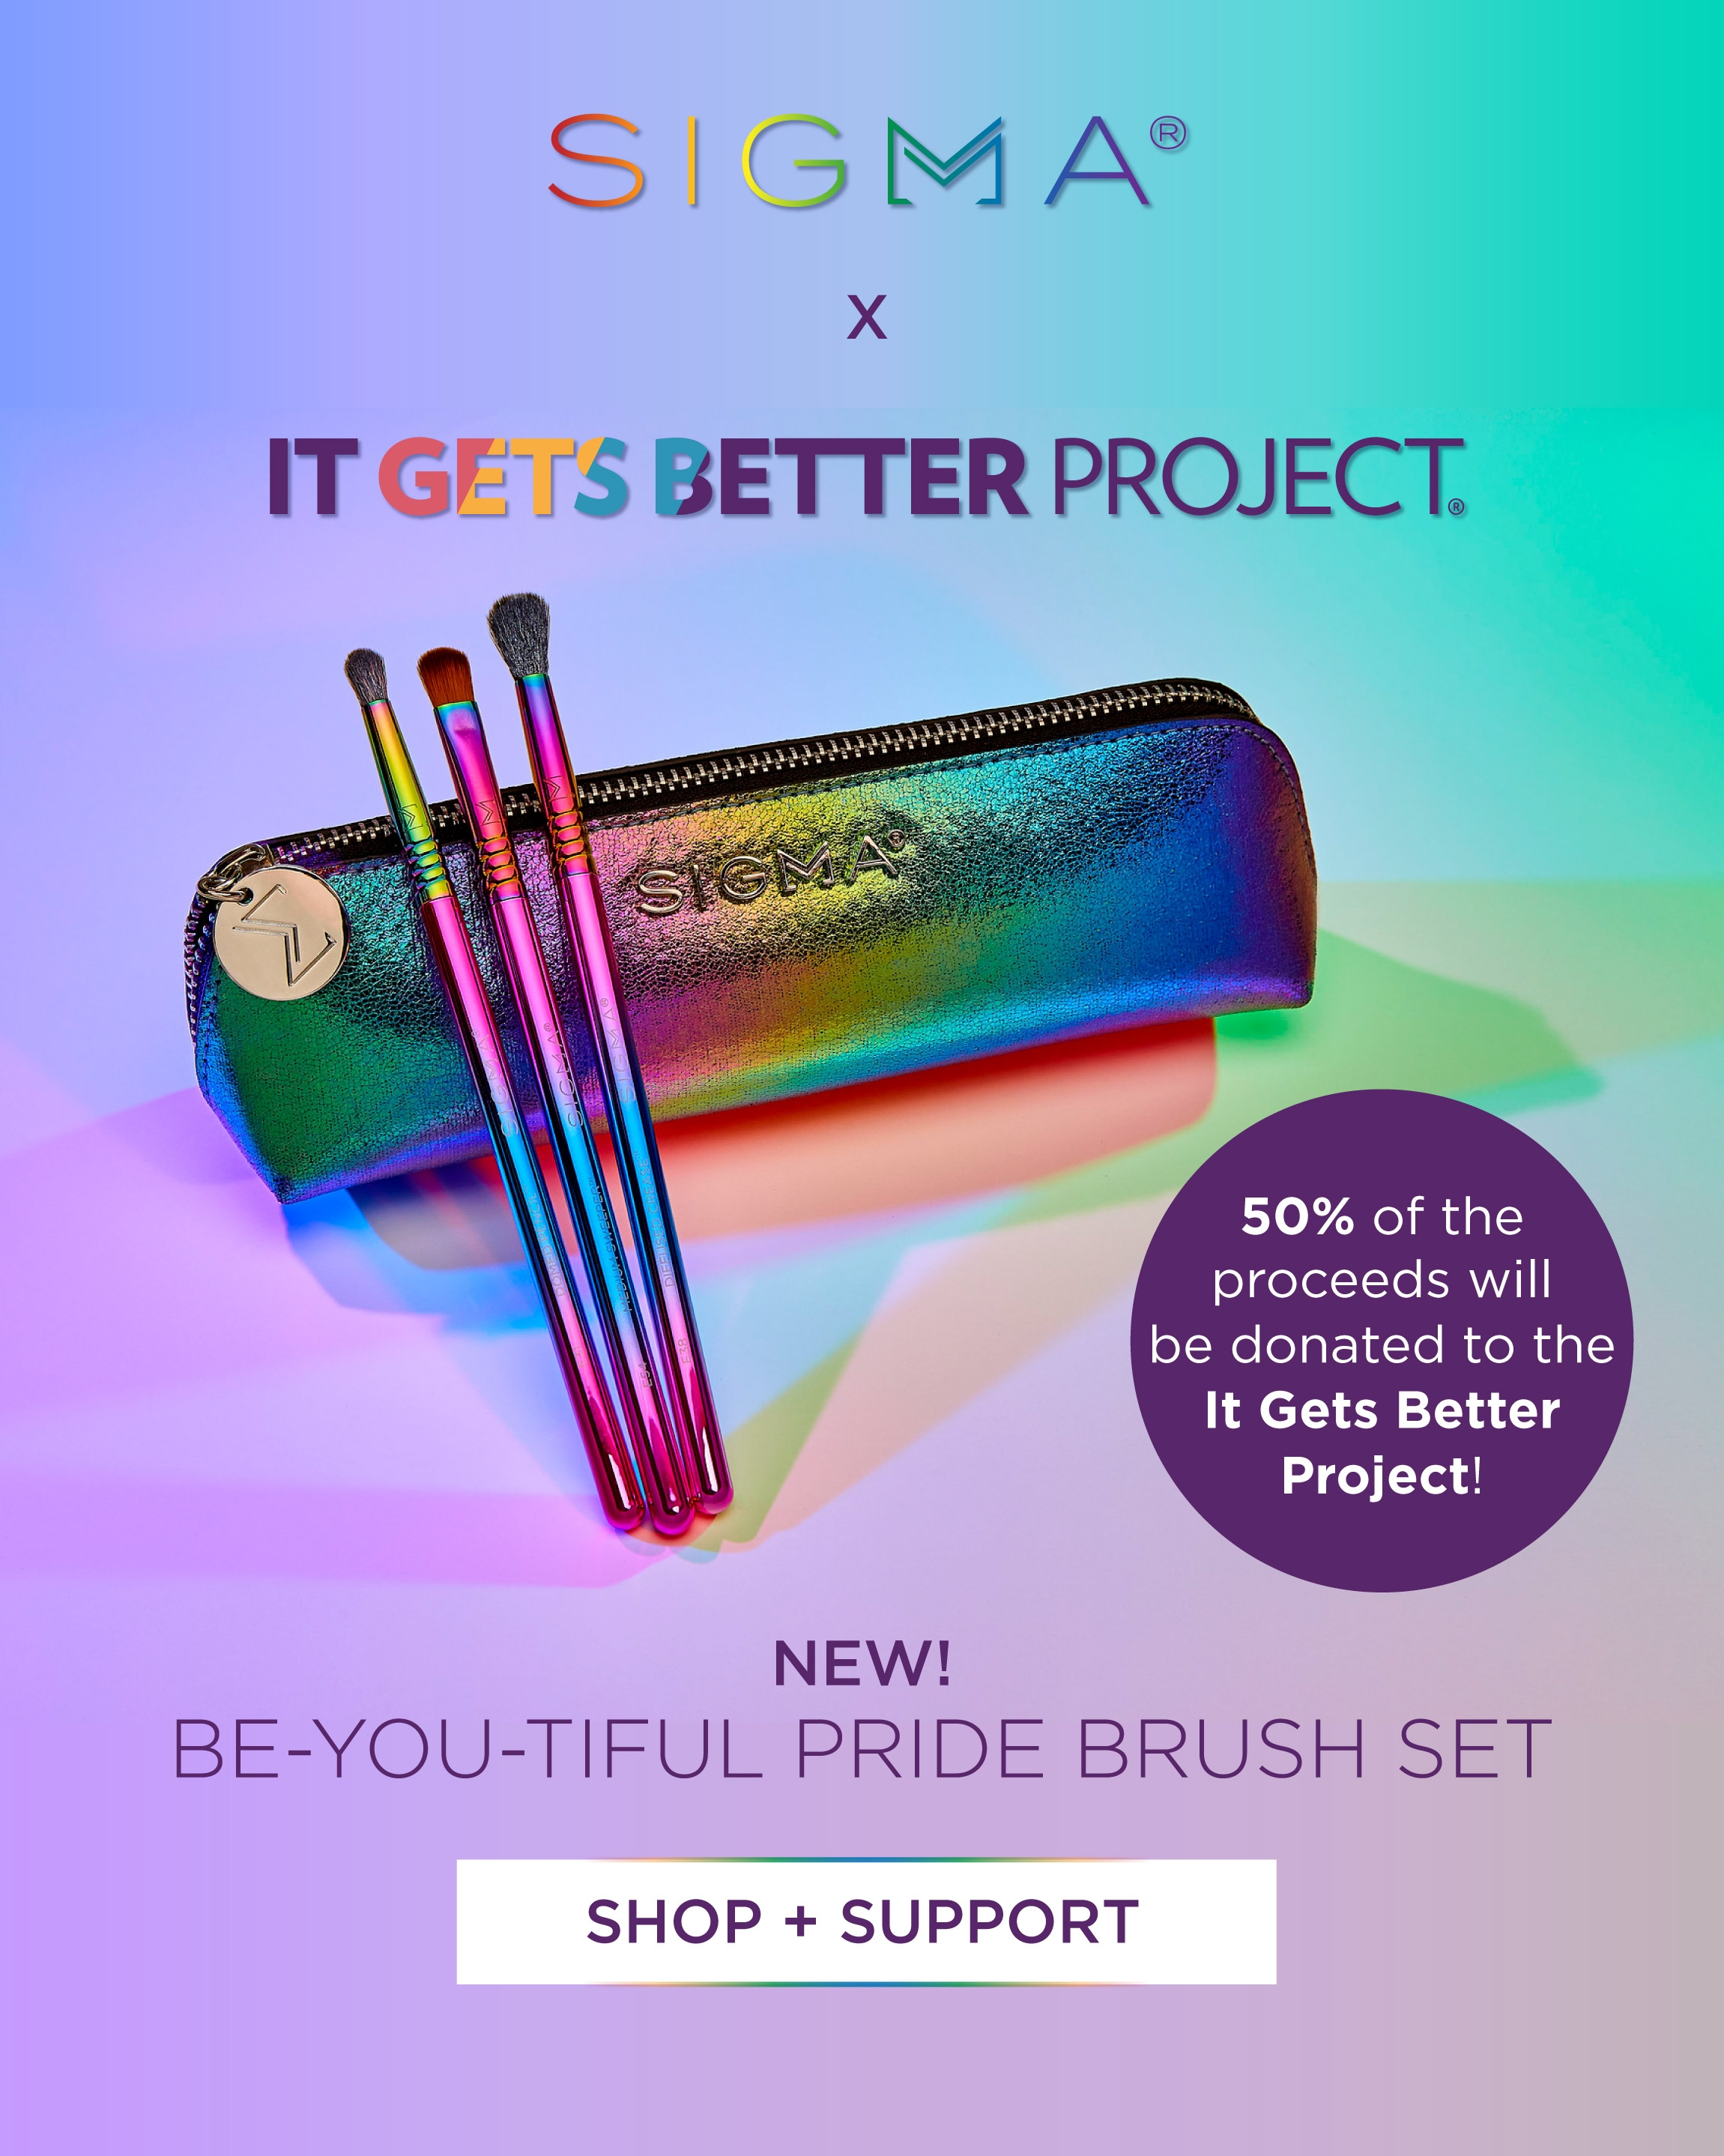 SIGMA X IT GETS BETTER PROJECT